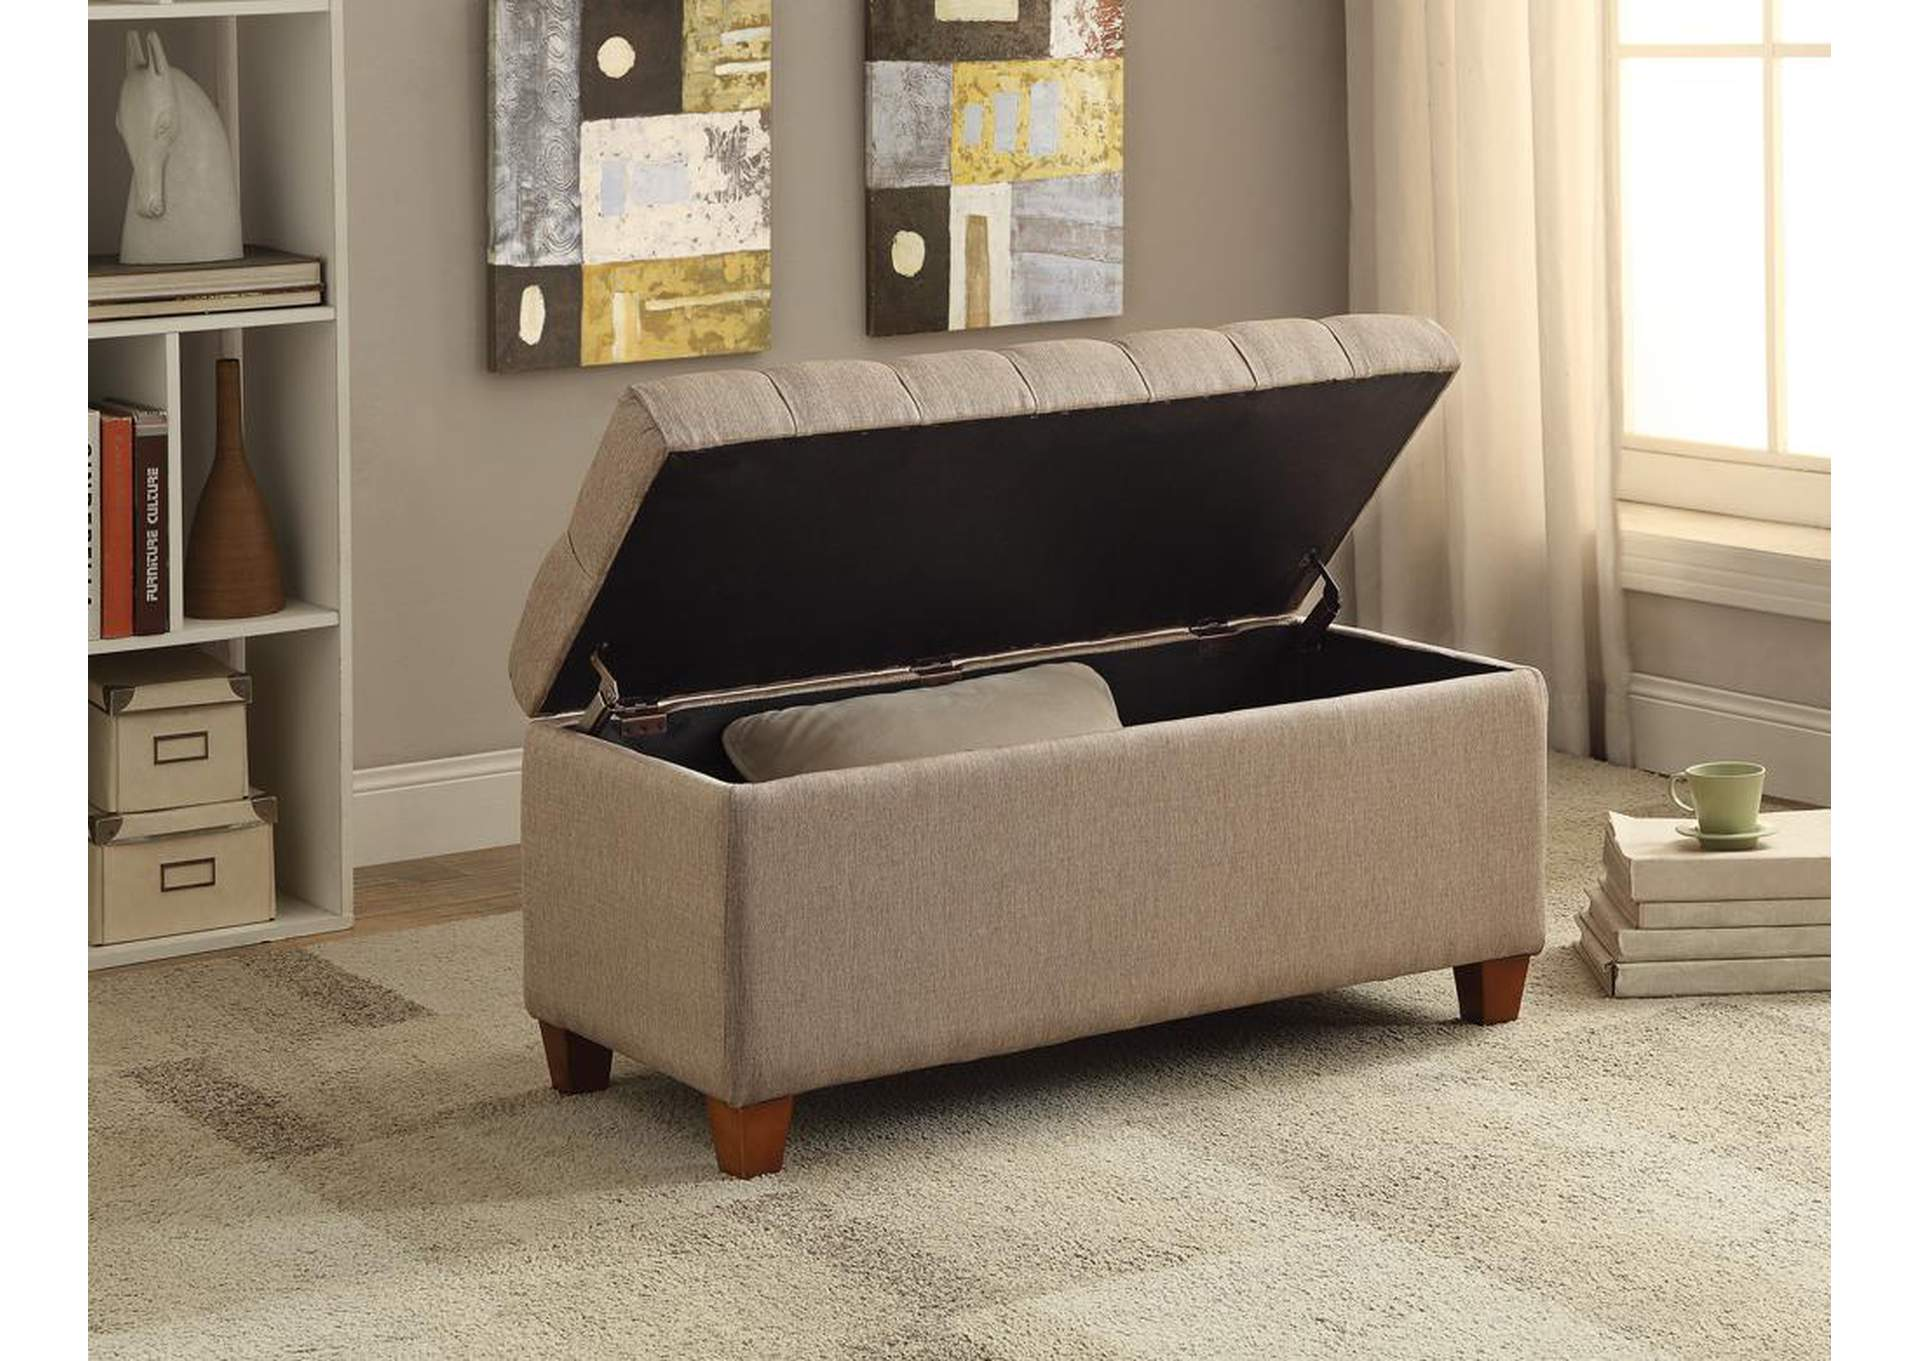 Tufted Taupe Storage Bench,Coaster Furniture